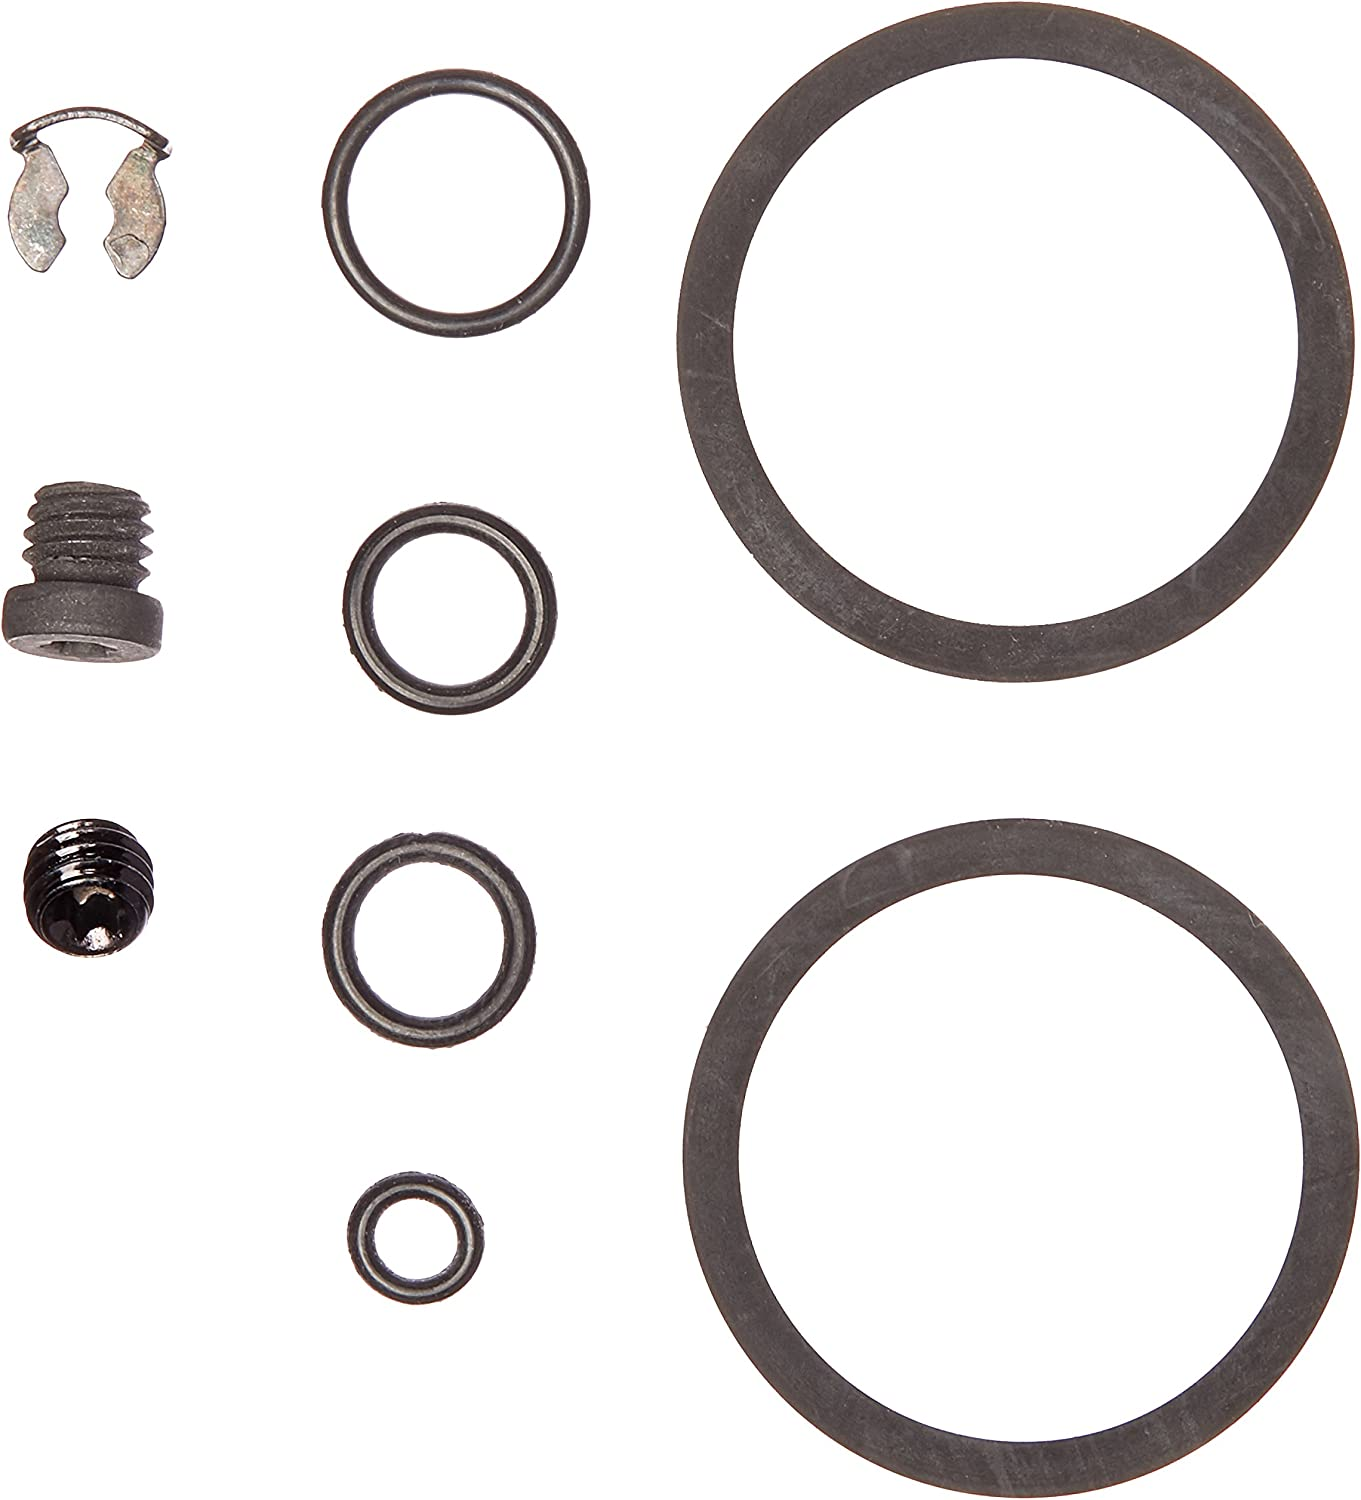 Avid Elixir Caliper Piston Service Parts Kit